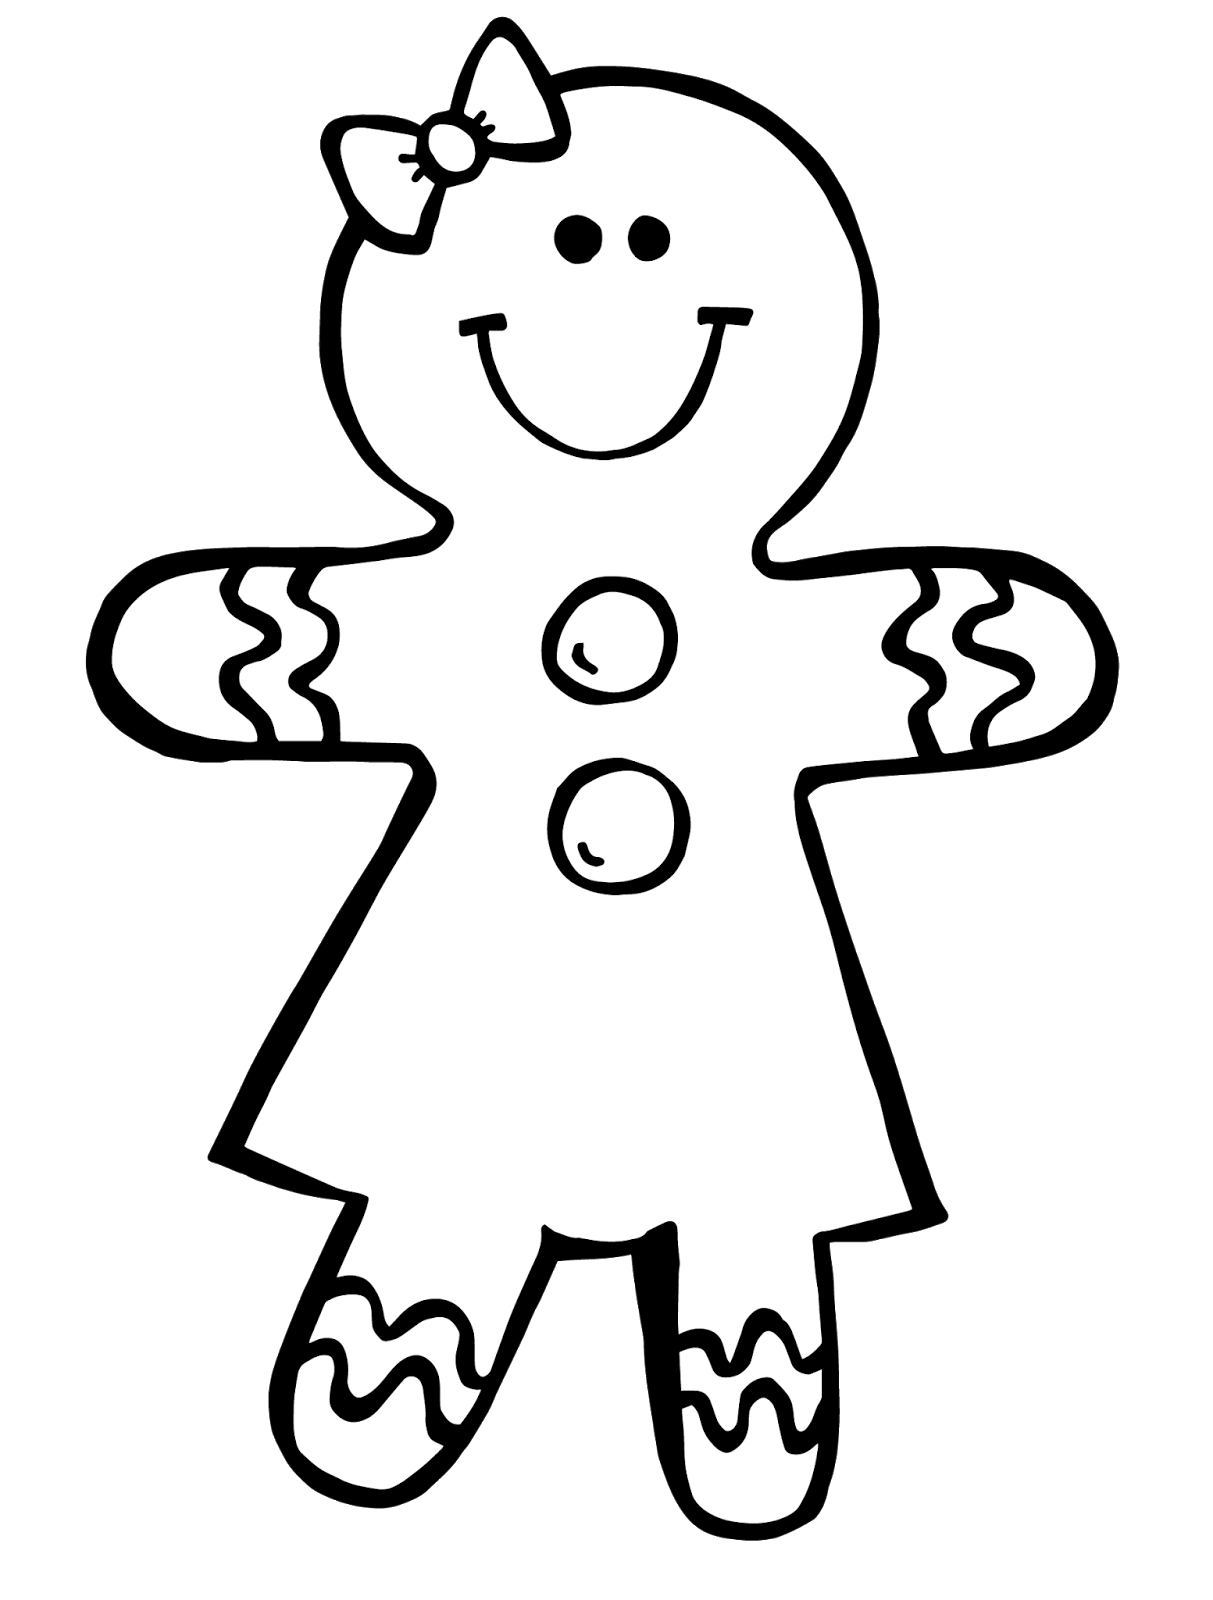 gingerbread girl printable rig6xdkiljpeg 9631600 pixels people coloring pages gingerbread printable girl